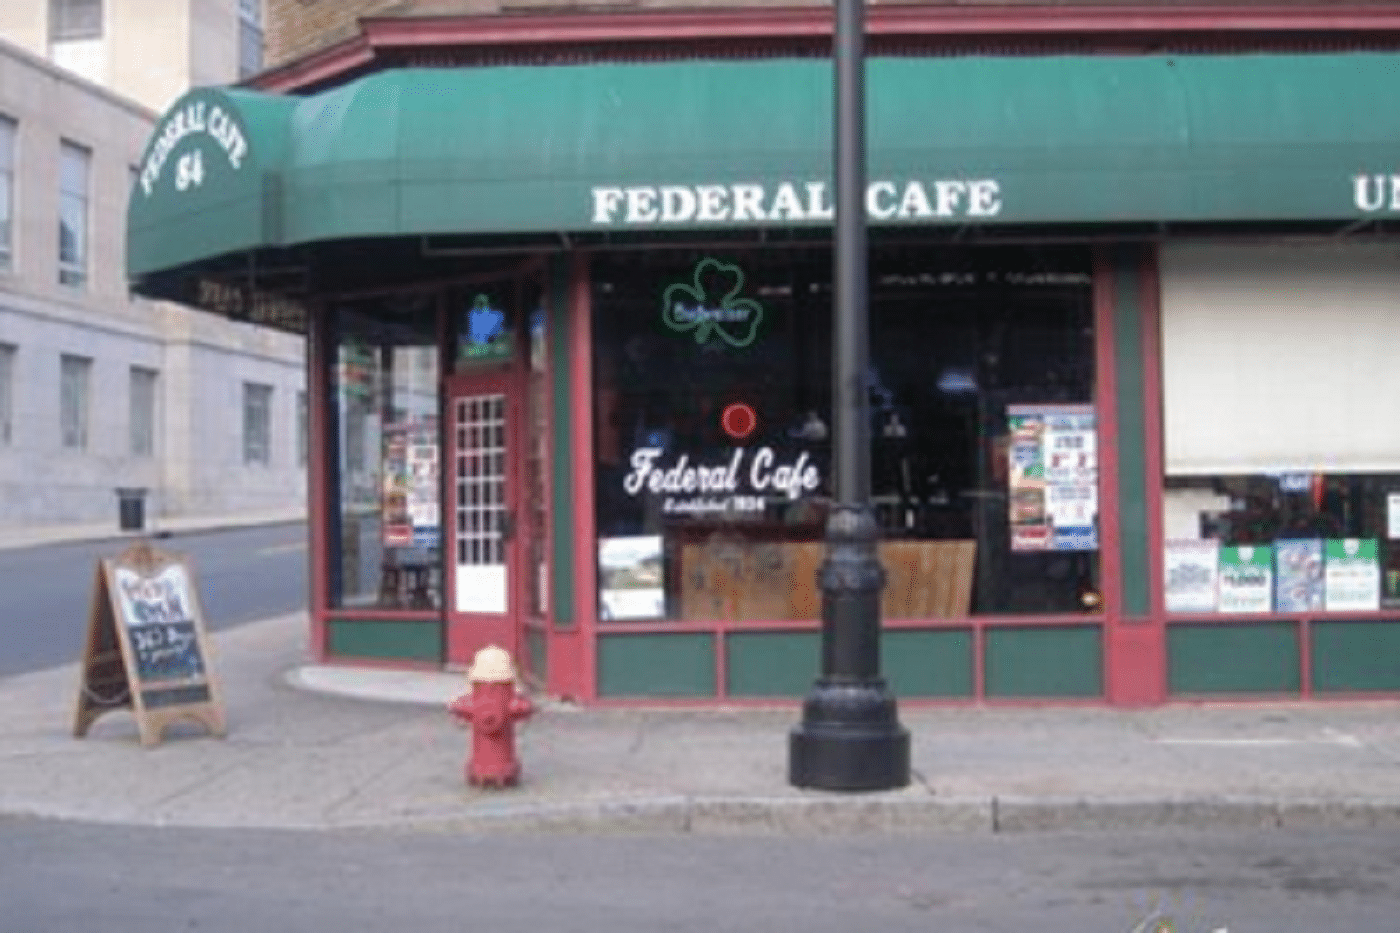 Federal Cafe, 84 Union Pl, Hartford, CT 06103 Suspended